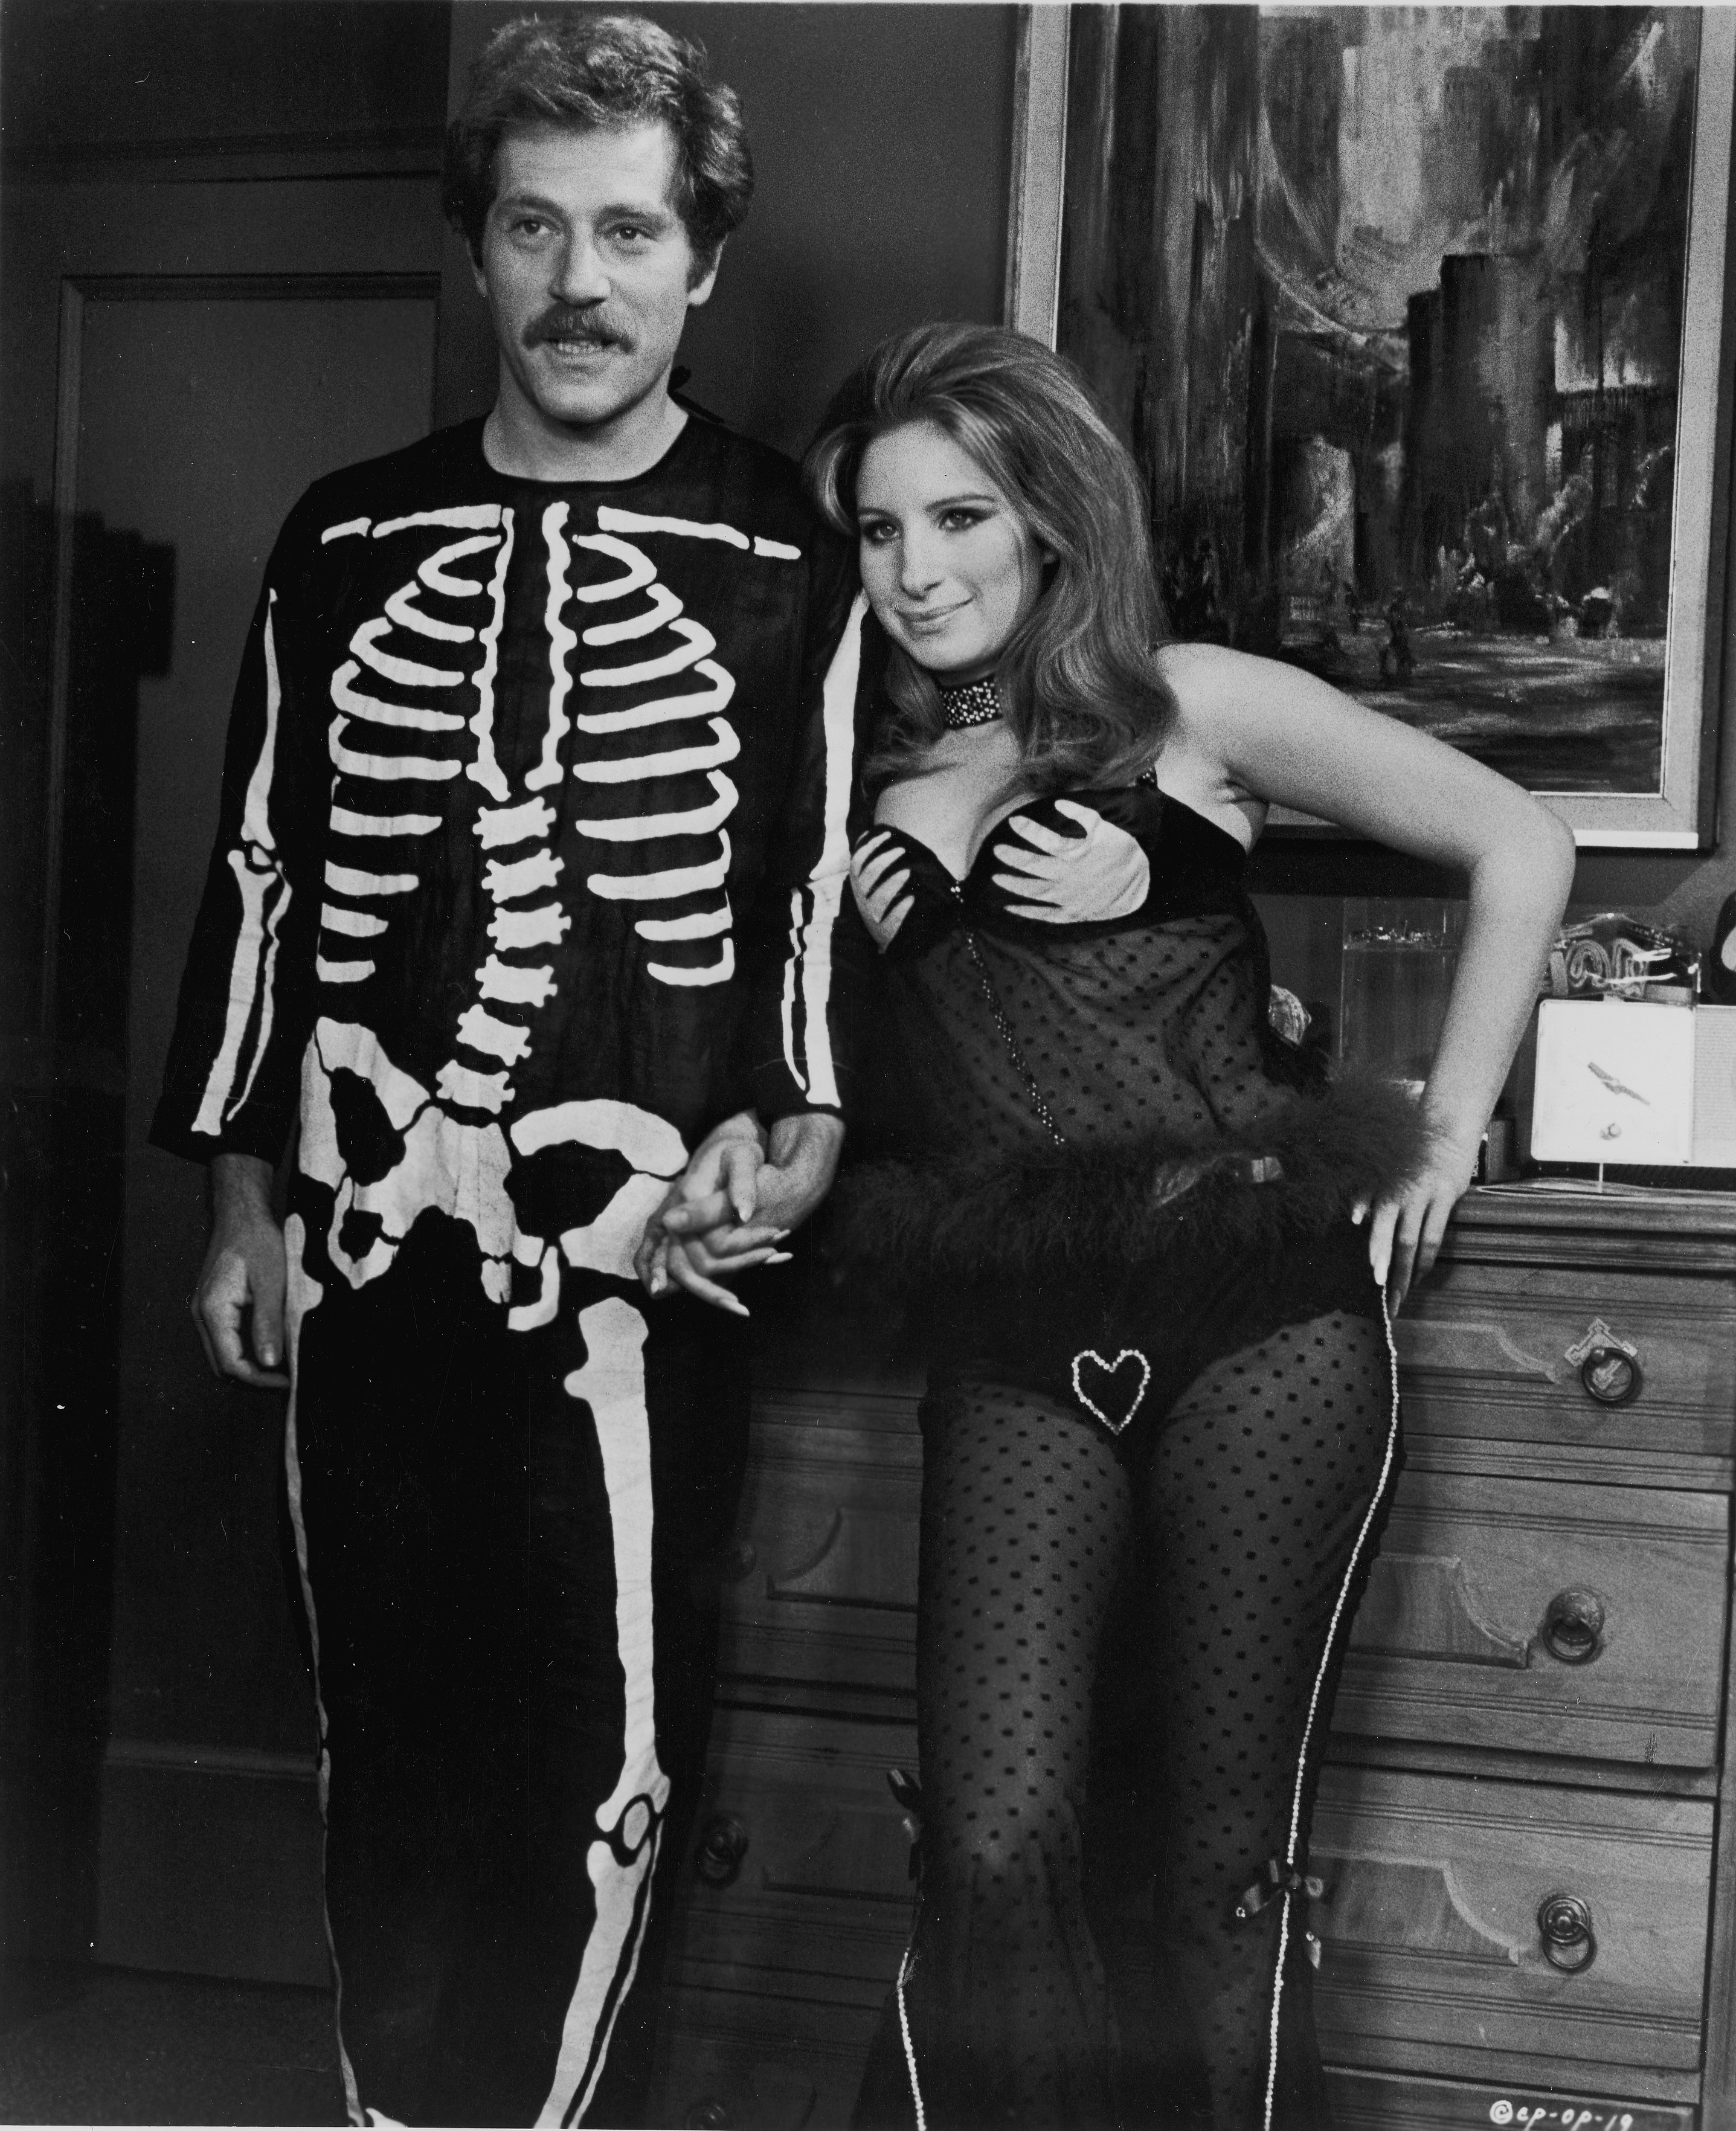 Barbra Streisand and George Segal at an event for The Owl and the Pussycat (1970)